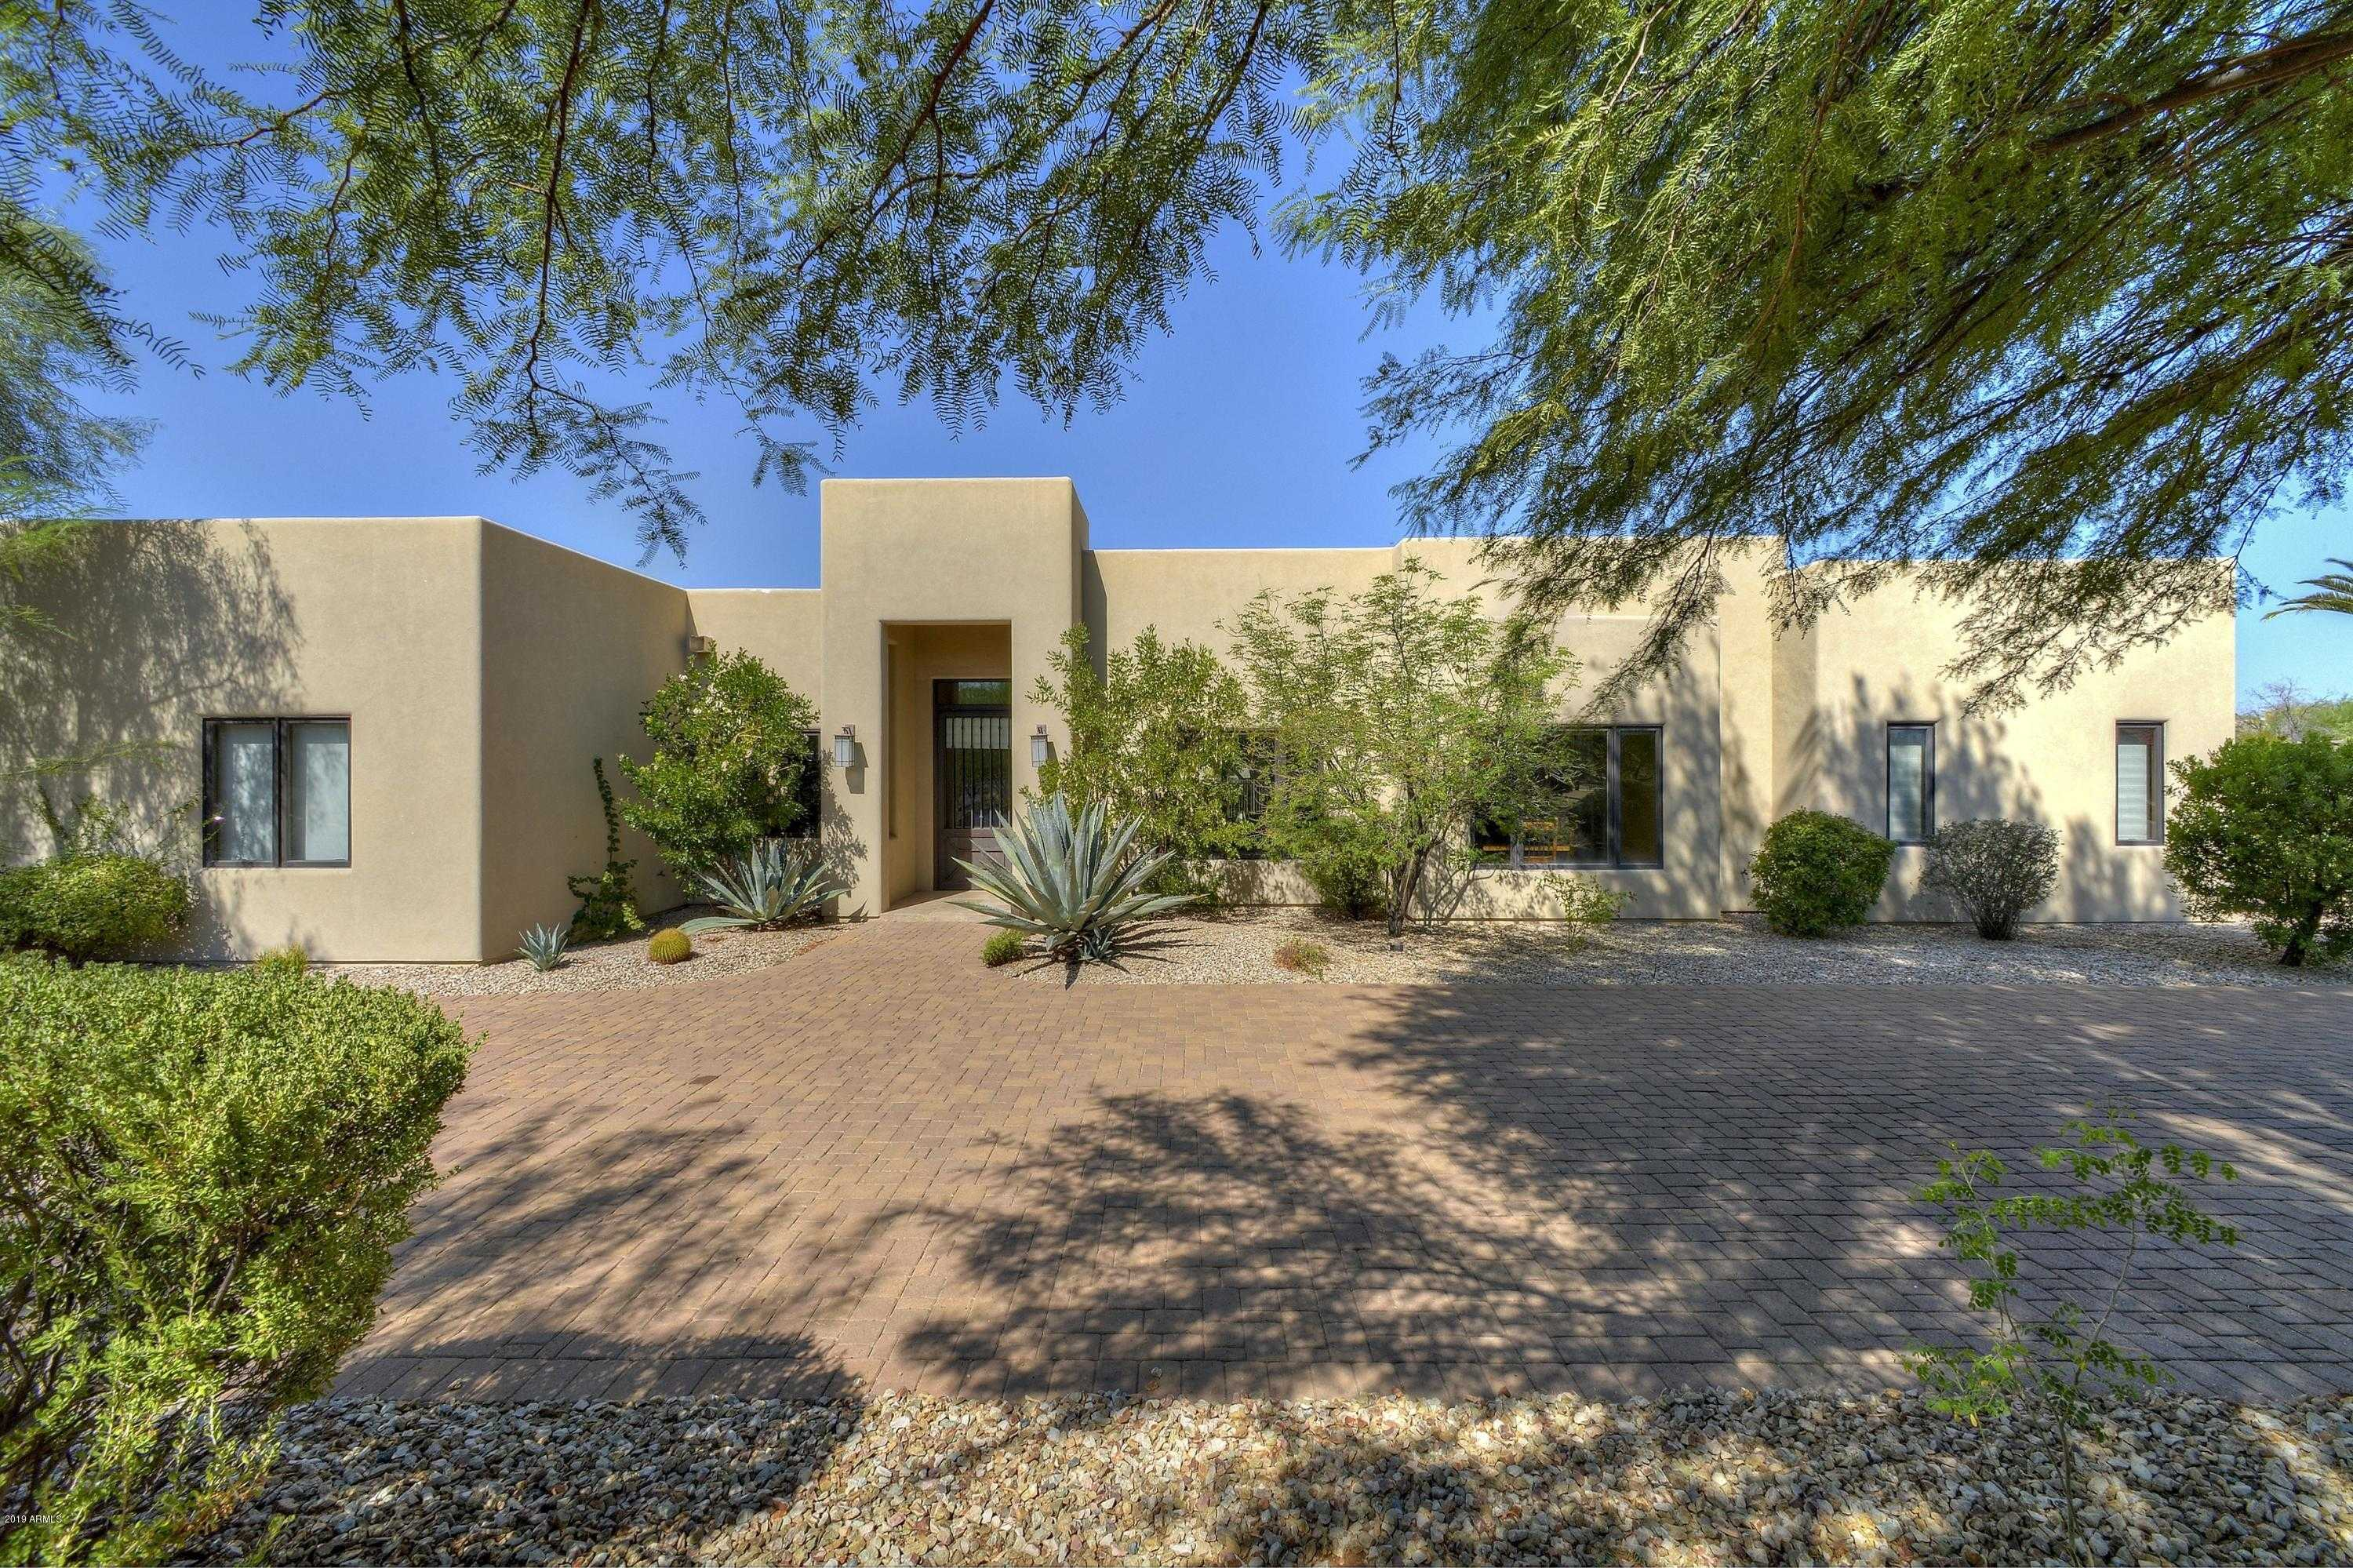 $1,600,000 - 5Br/5Ba - Home for Sale in Patterson Ranch, Scottsdale